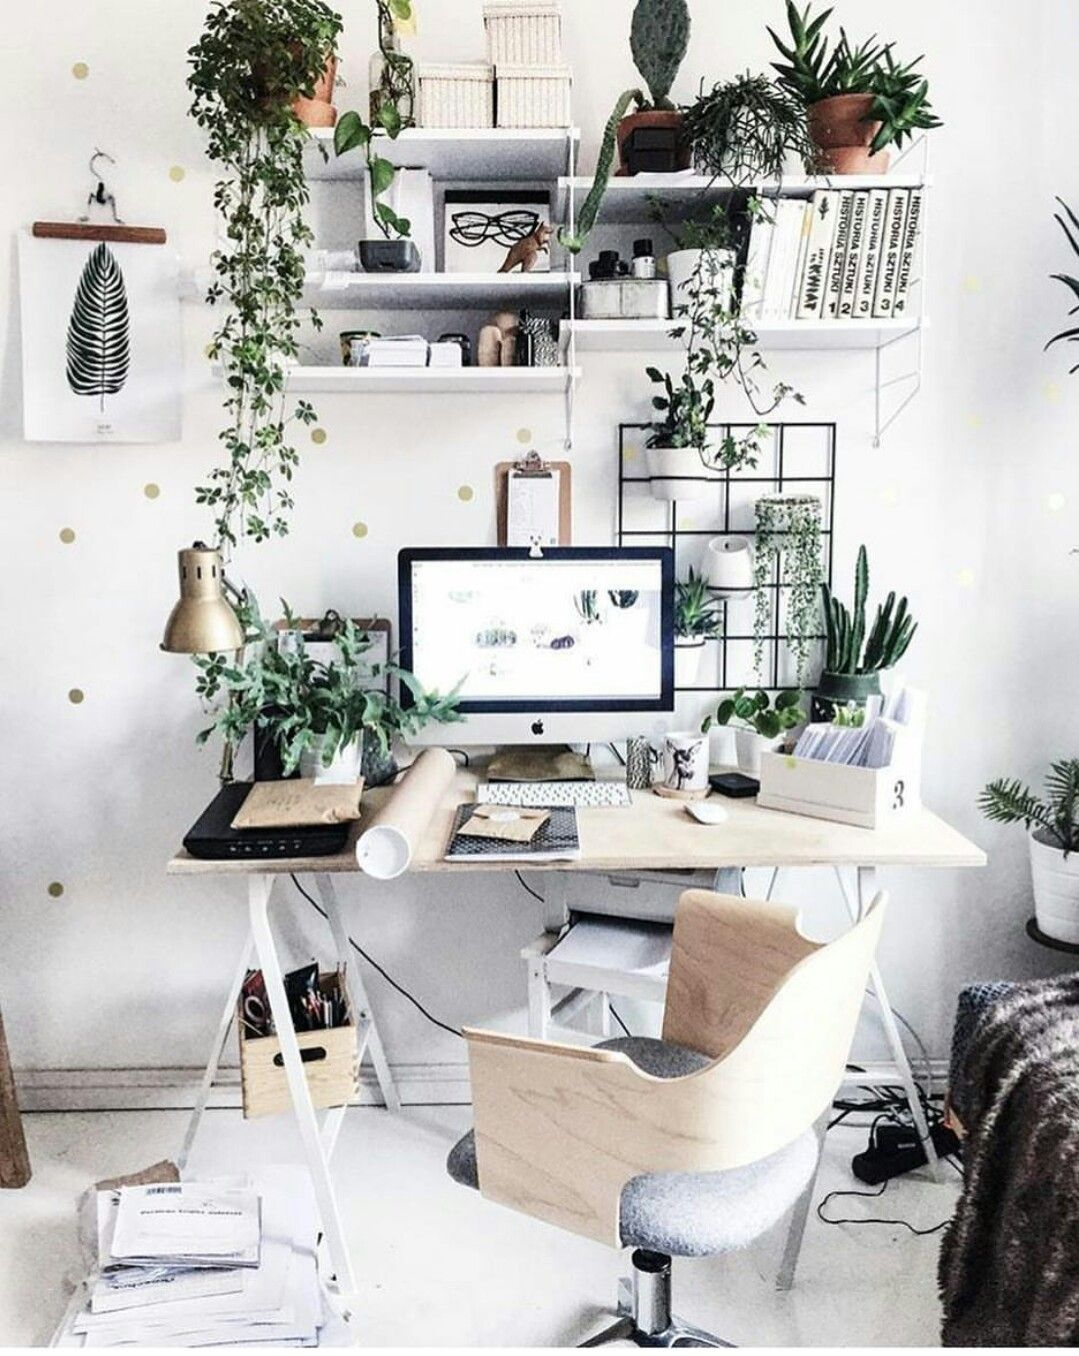 Home zimmer design-ideen plant inspired office  home offices  pinterest  home desk and